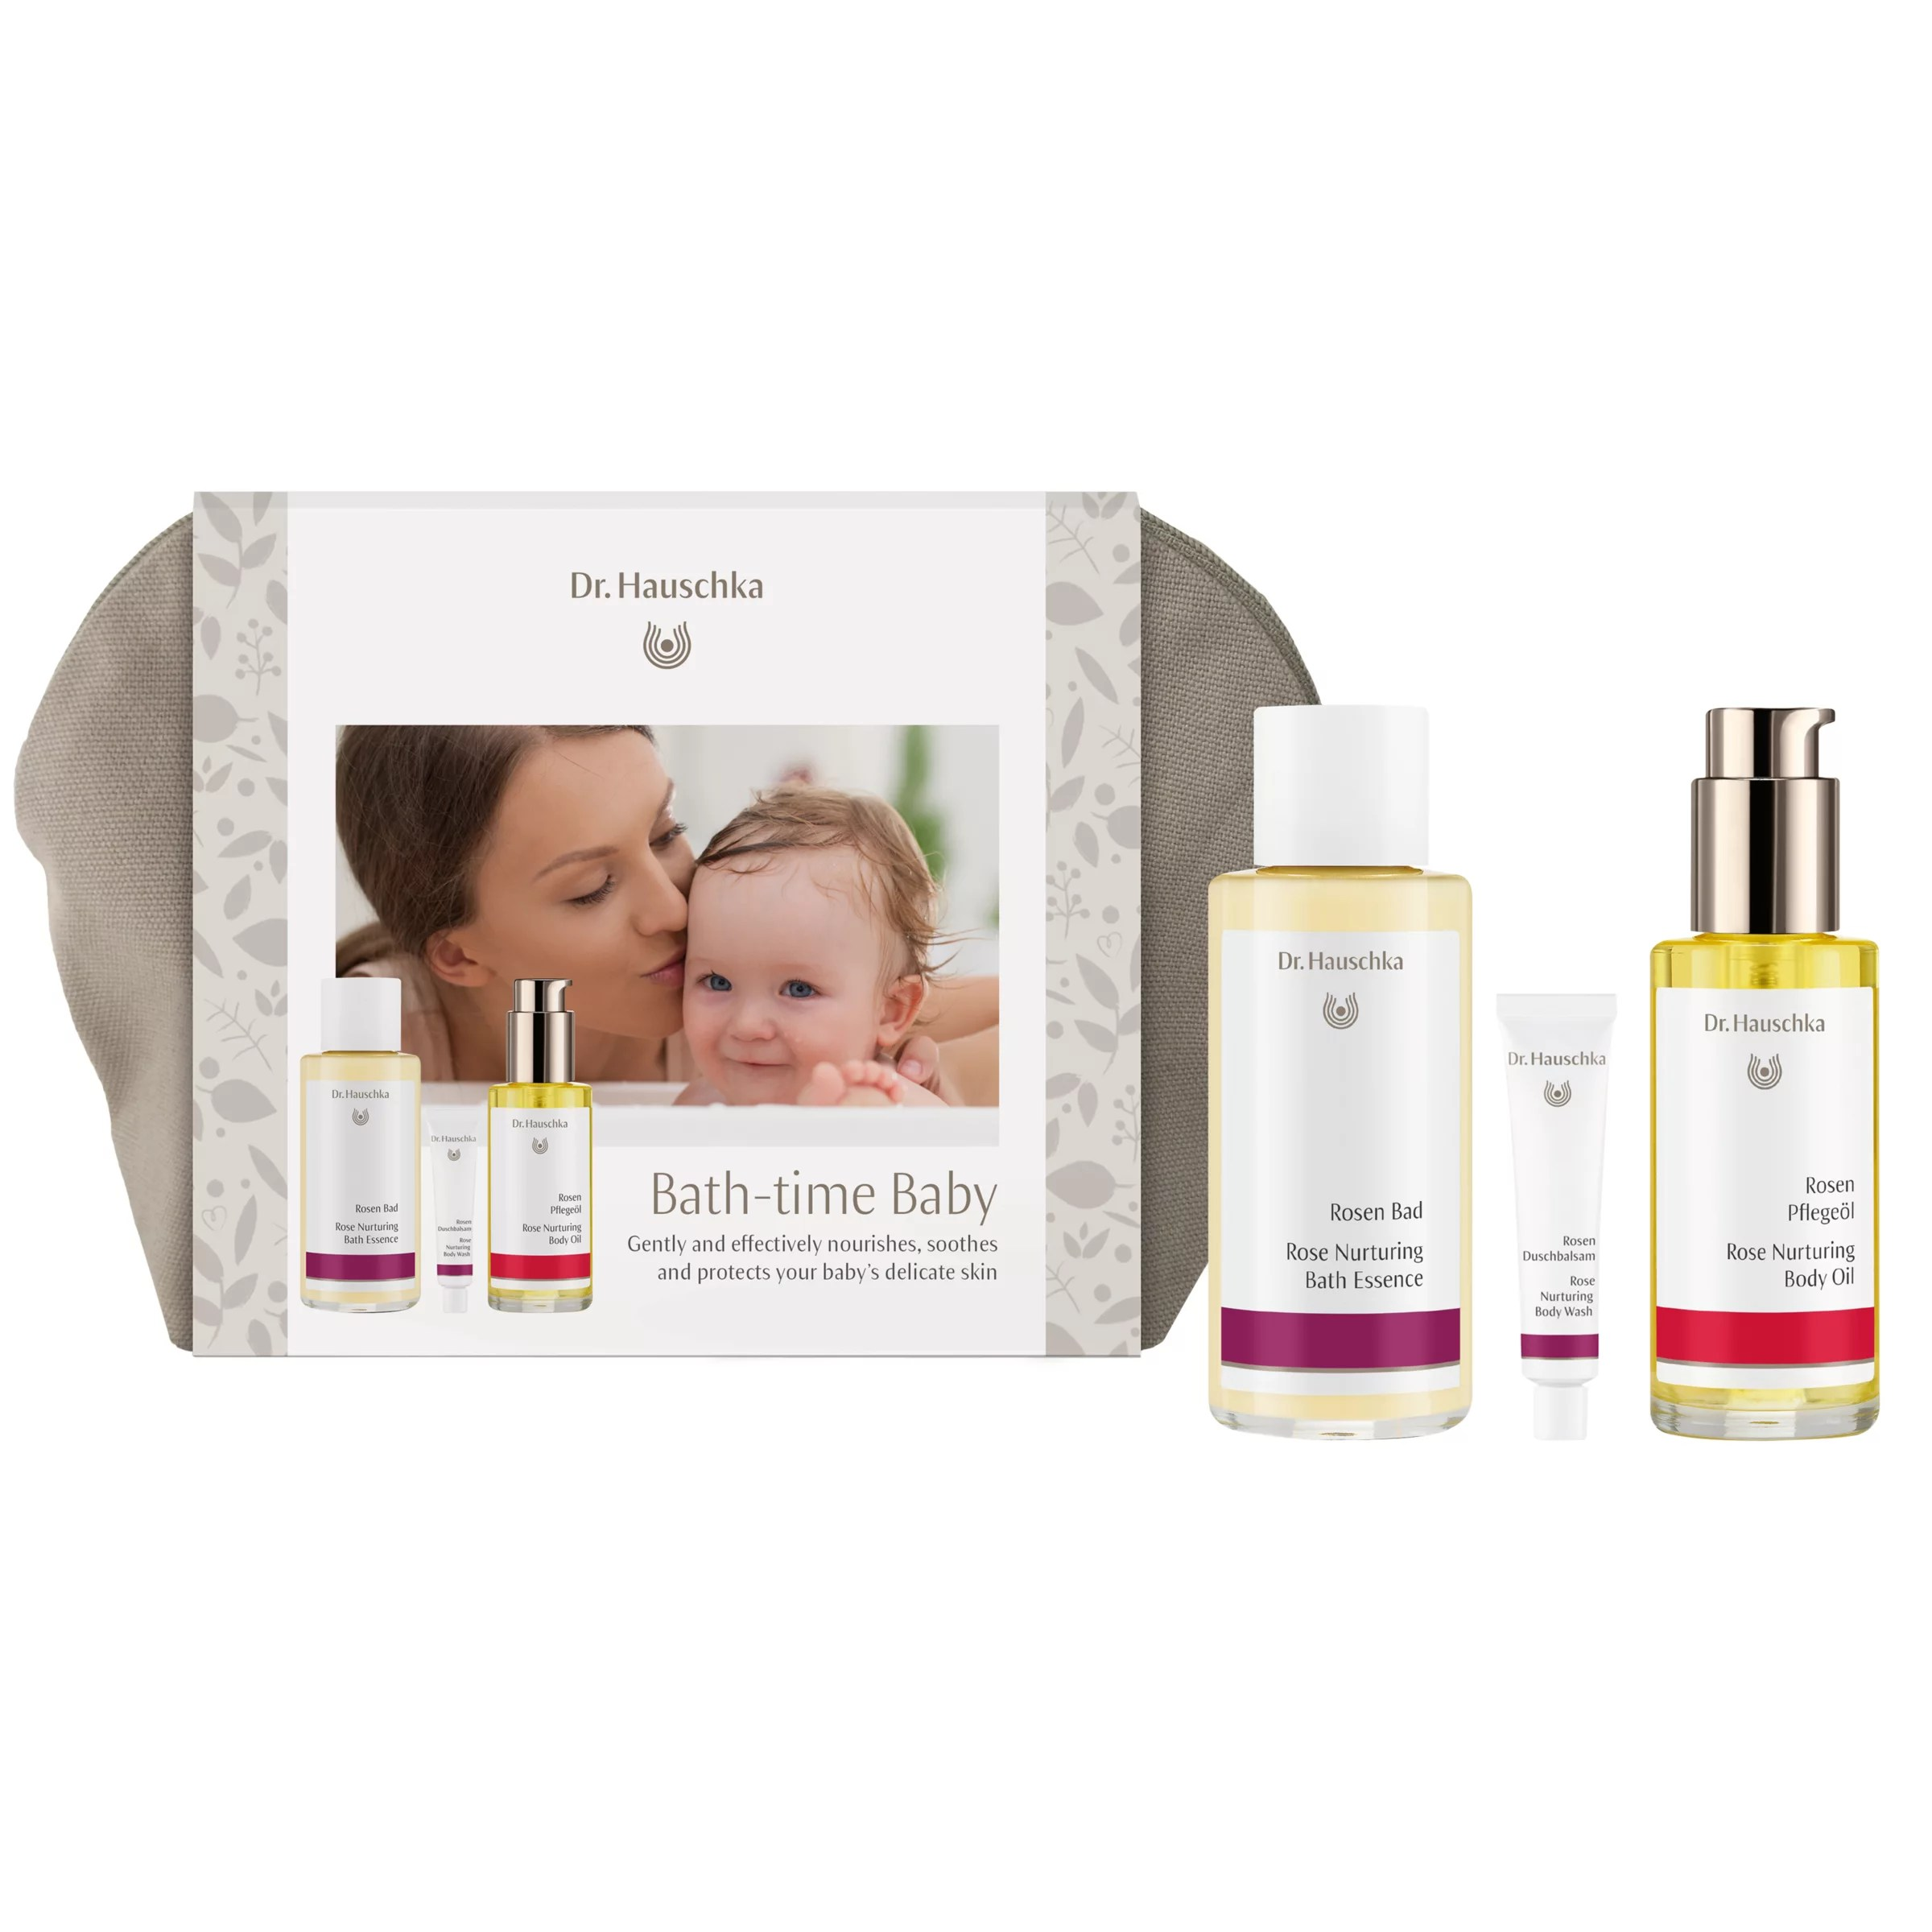 Bad Set For Baby Dr Hauschka Bath Time Baby Gift Set At John Lewis Partners